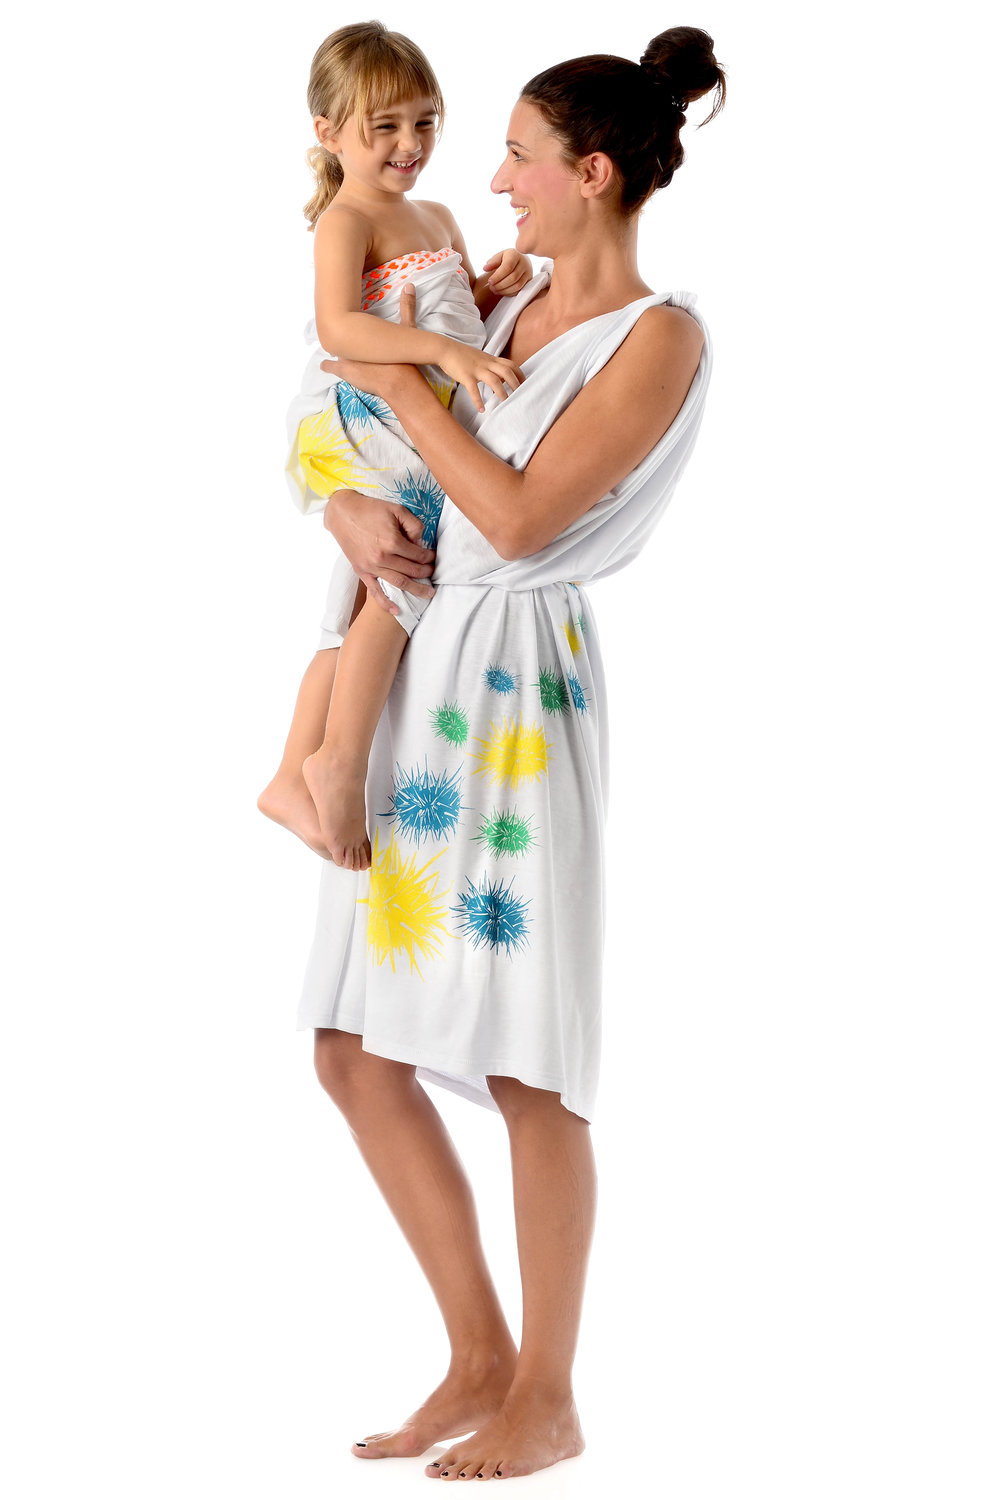 urchins-multi-color-design-on-white-cotton-kids-pareo-strapless-wraped-dress-matching-mother-daughetr-style-side.jpg